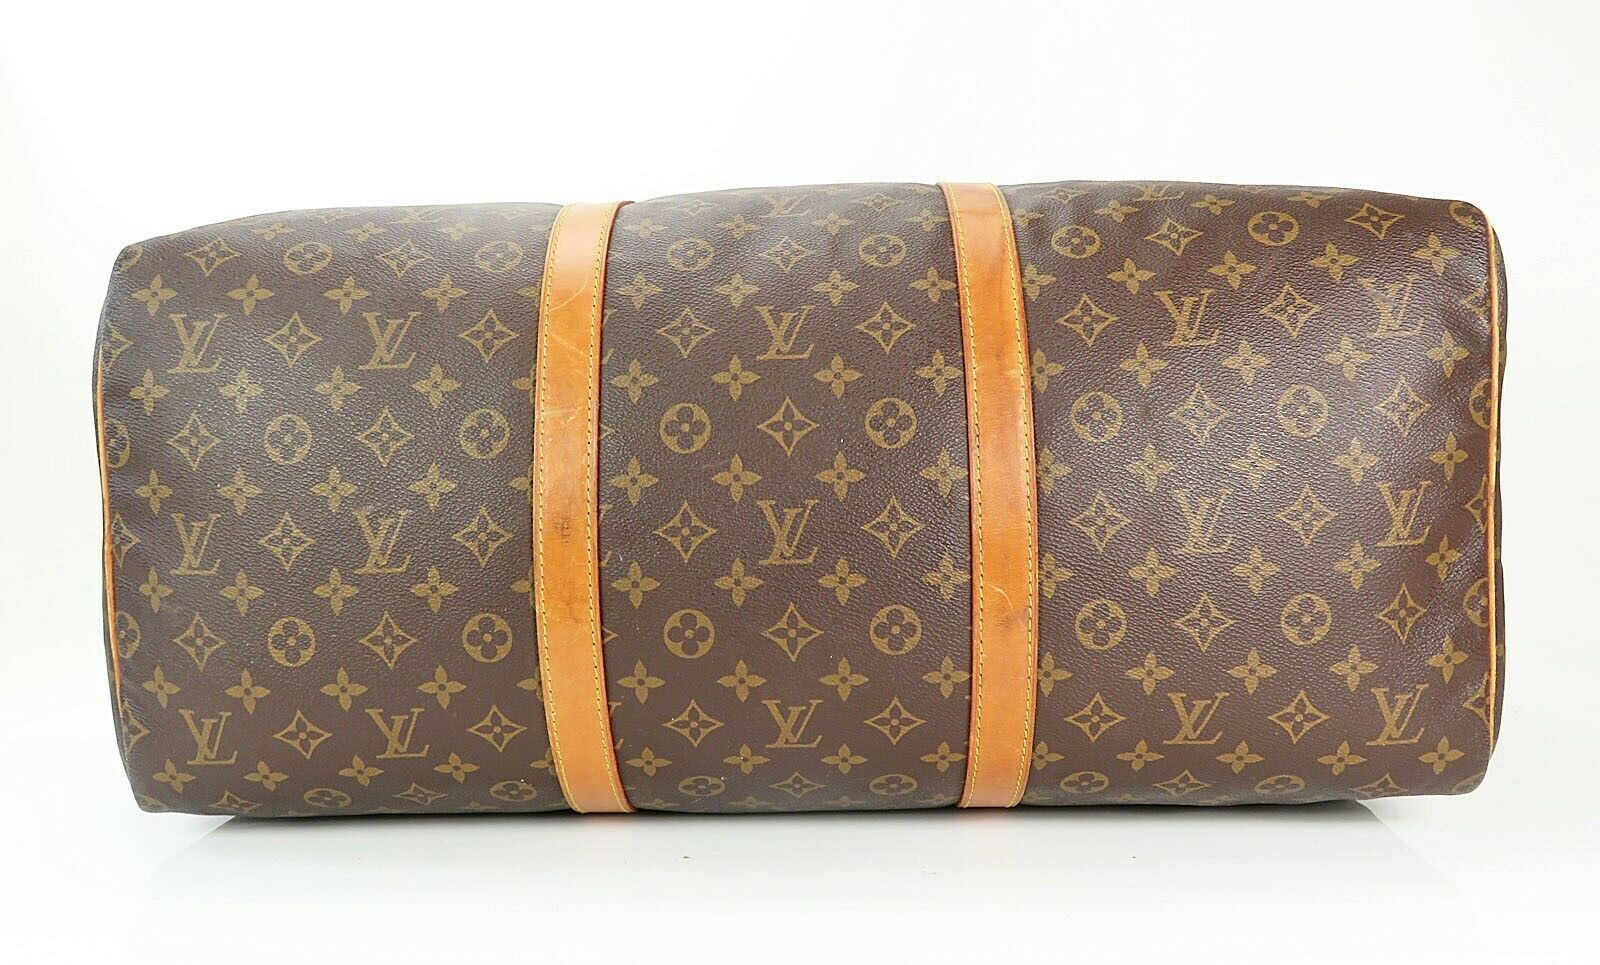 Authentic LOUIS VUITTON Sac Souple 55 Monogram Tote Duffle Bag #34978 image 5